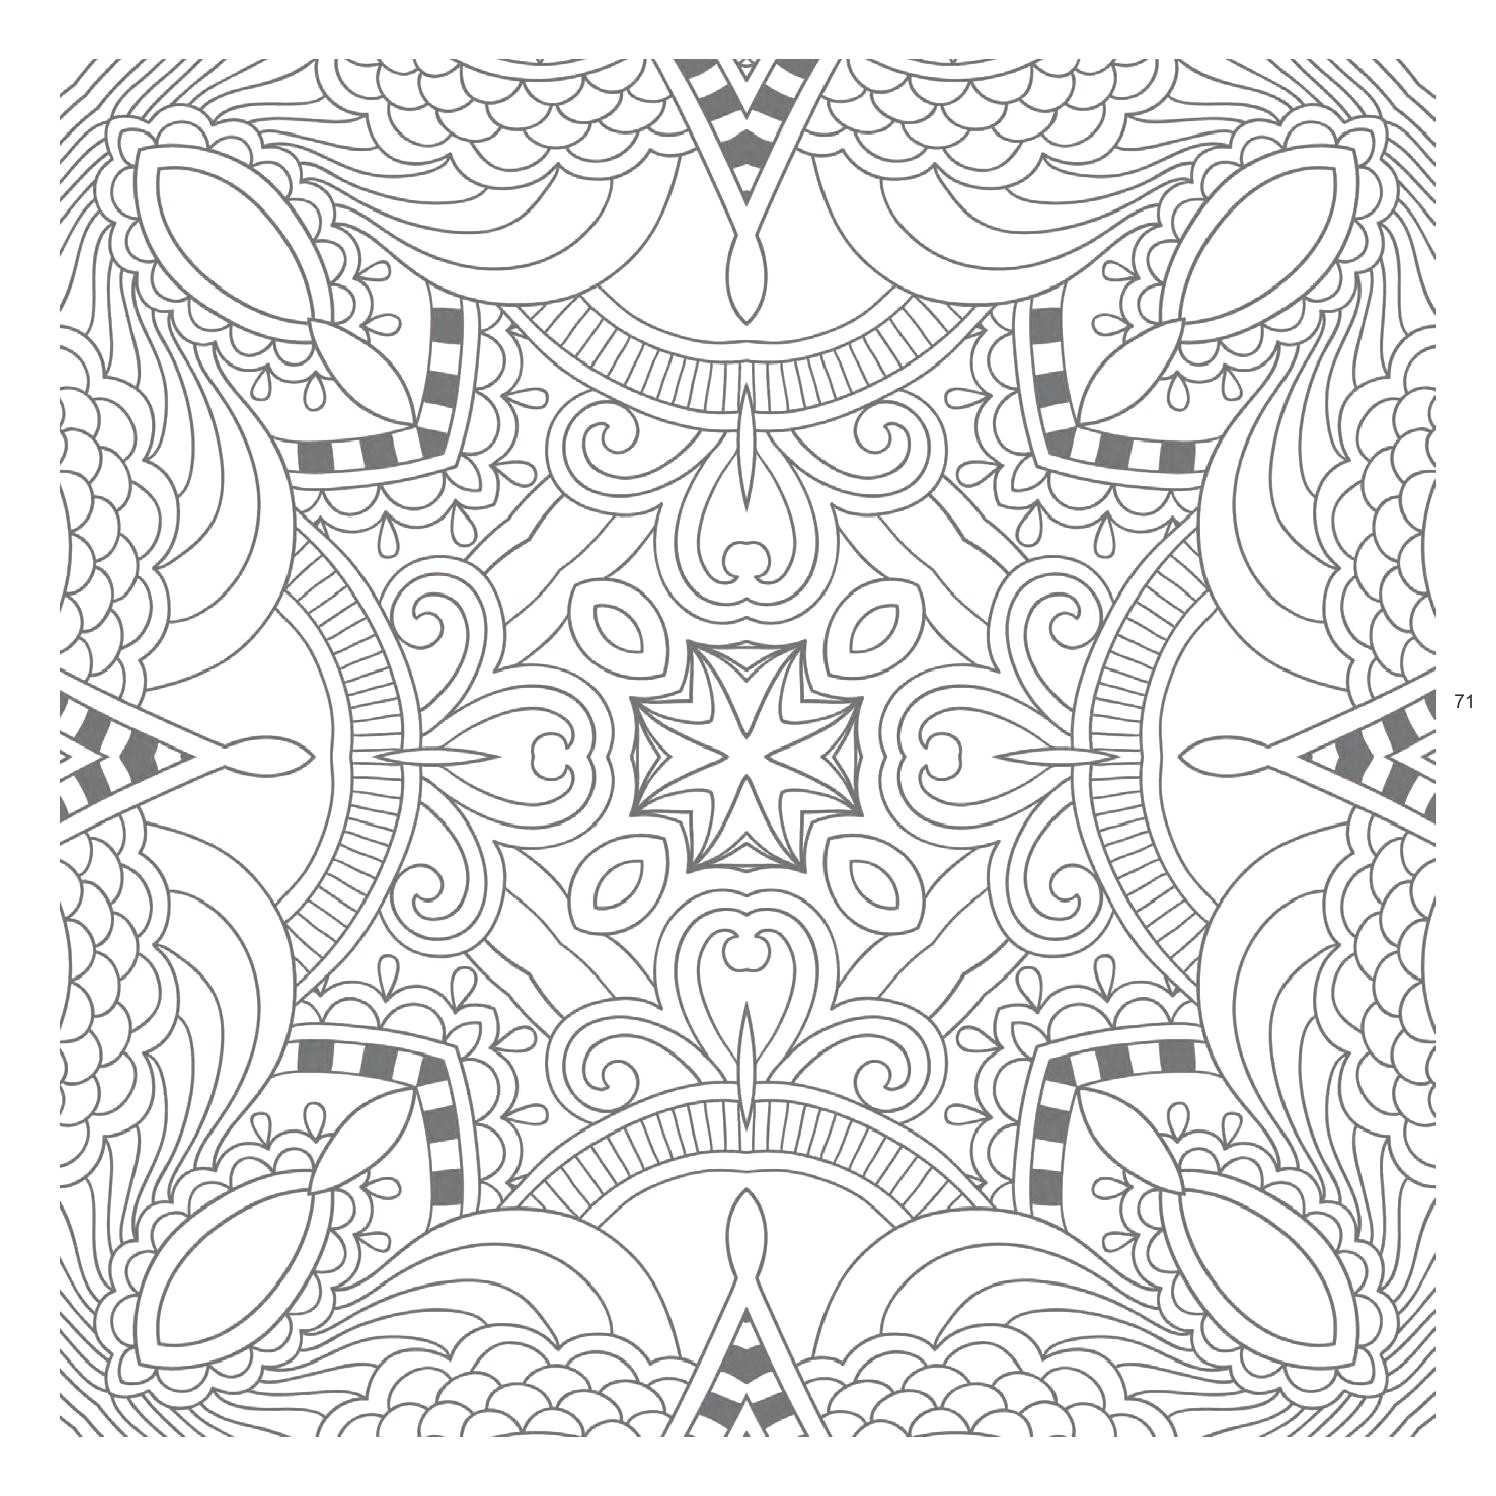 Awesome Free Printable Zentangle Templates : Coloring Pages - Free Printable Zentangle Templates